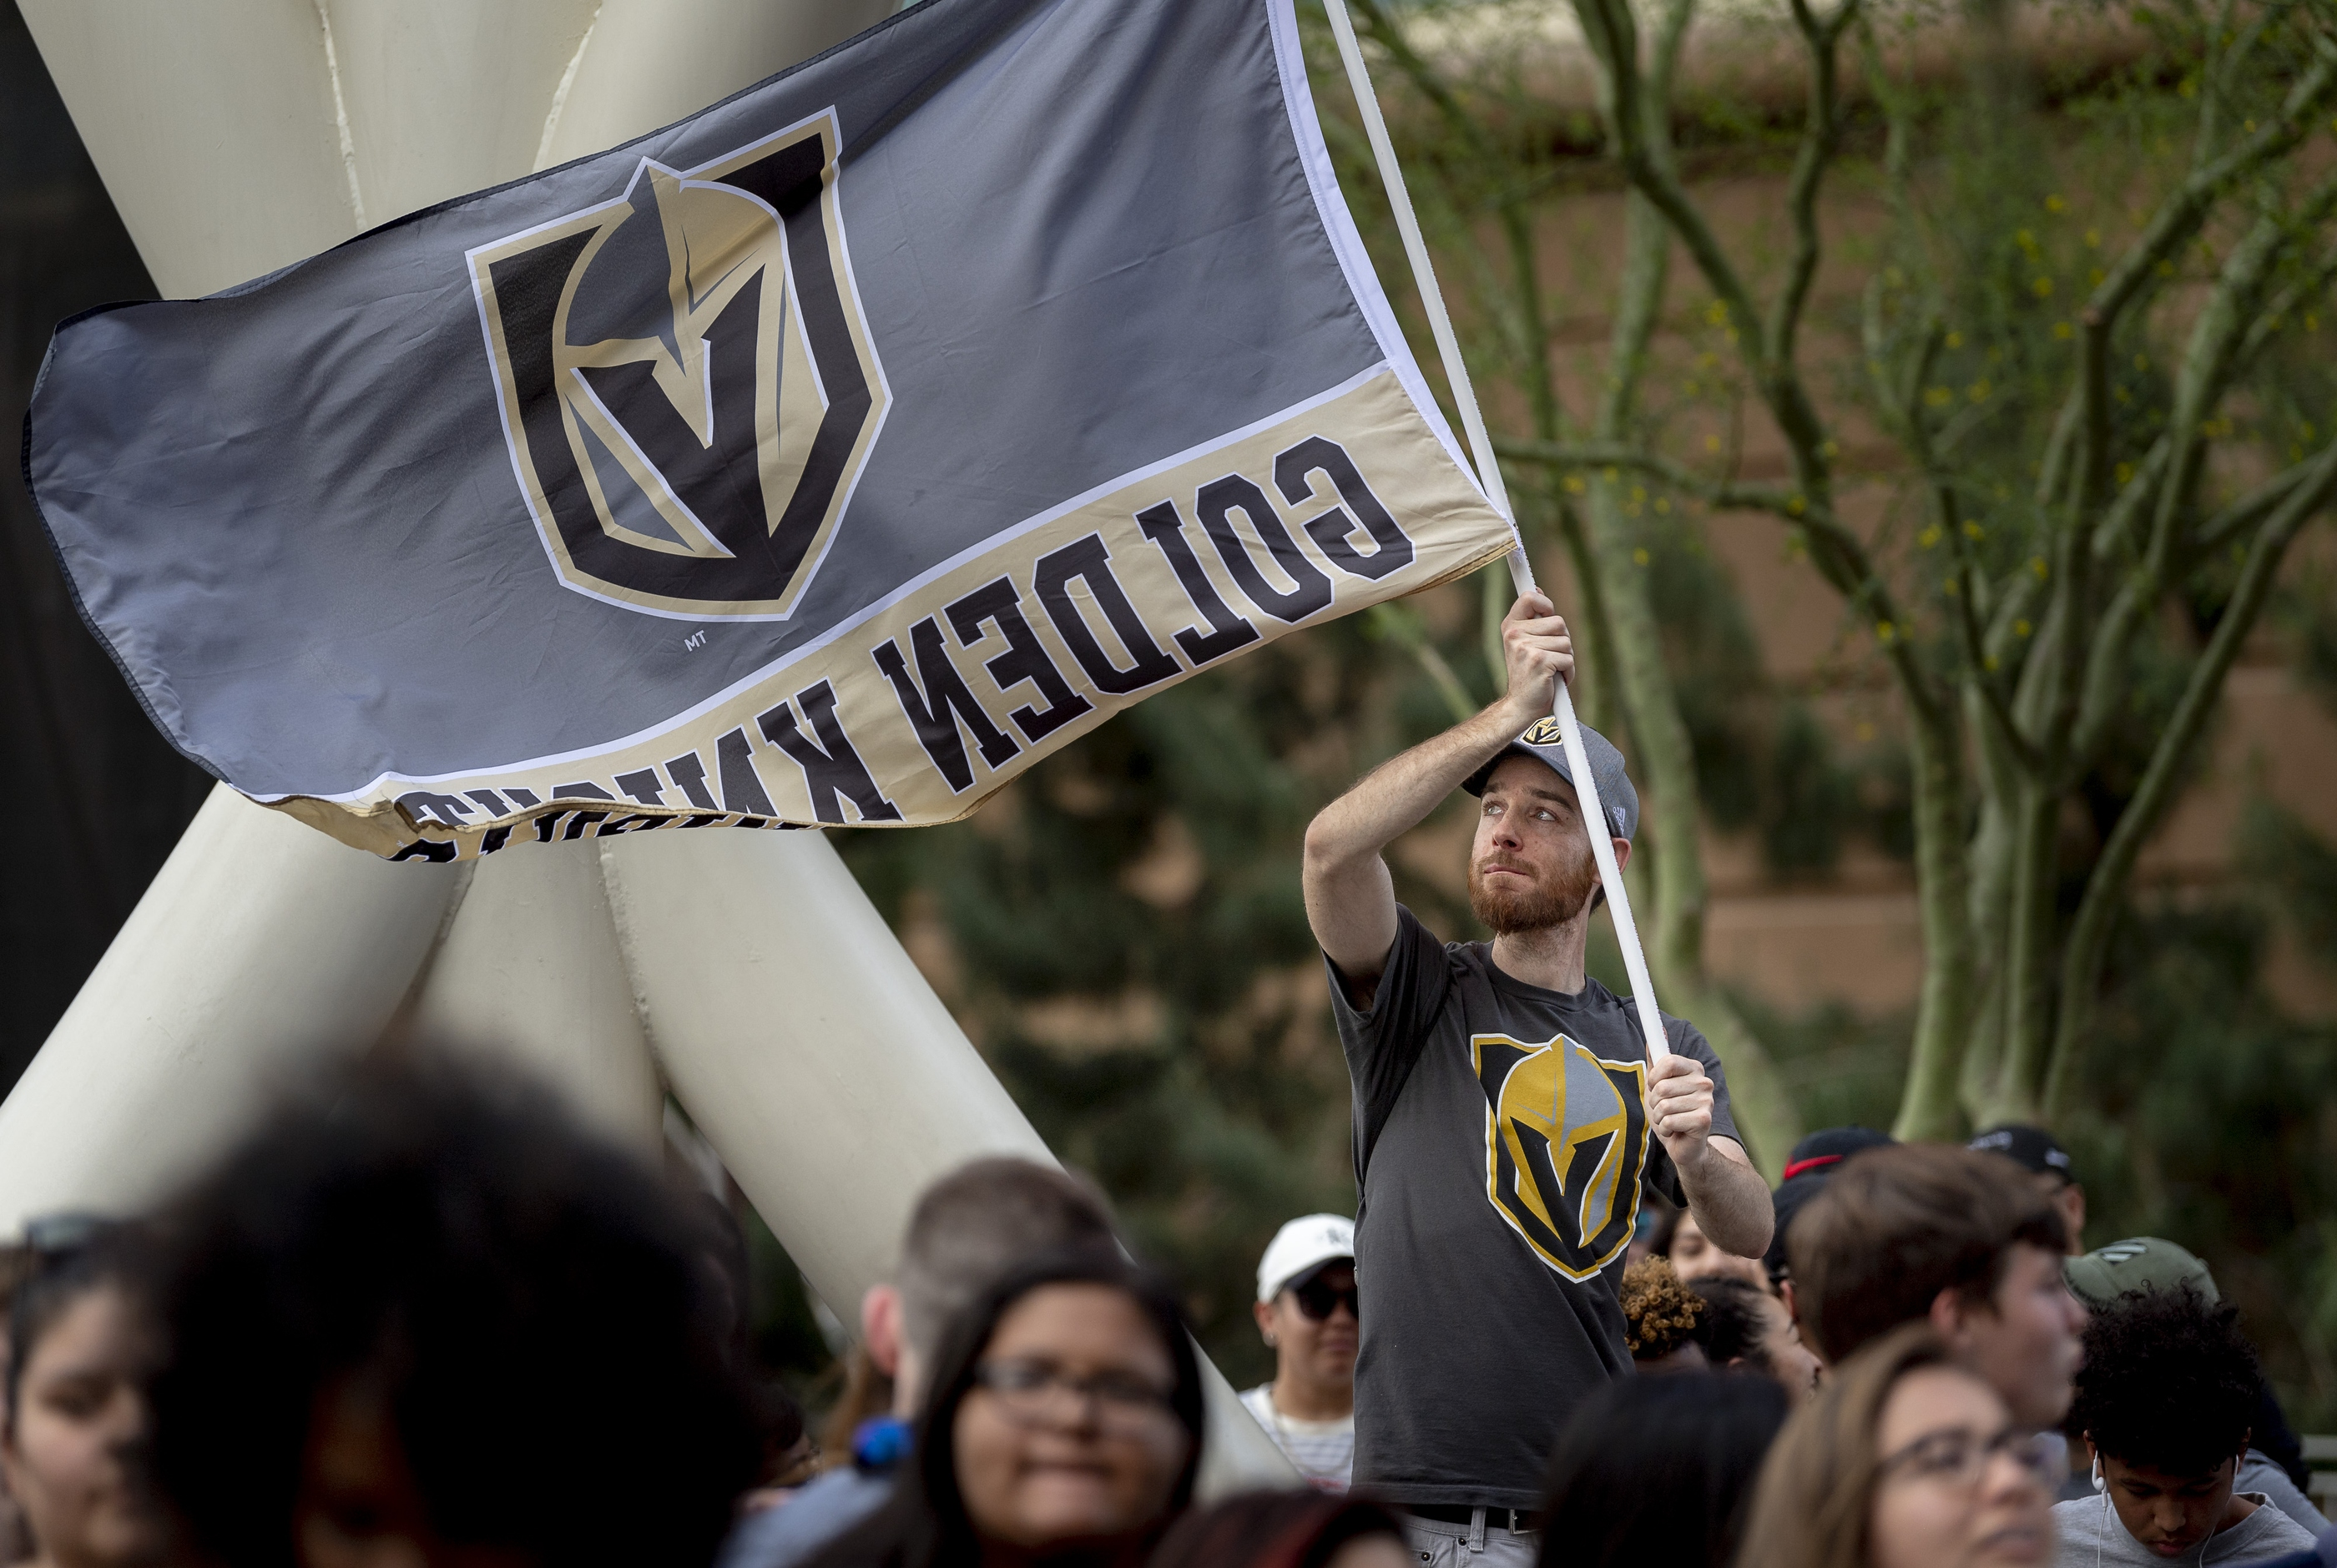 A fan unfurls his banner in the pre-game celebration in Toshiba Plaza as the Vegas Golden Knights prepare to meet the Los Angeles Kings in the first quarterfinal game of the NHL Stanley Cup Playoffs at T-Mobile Arena in Las Vegas on Wednesday, April 11, 2018.  CREDIT: Mark Damon/Las Vegas News Bureau